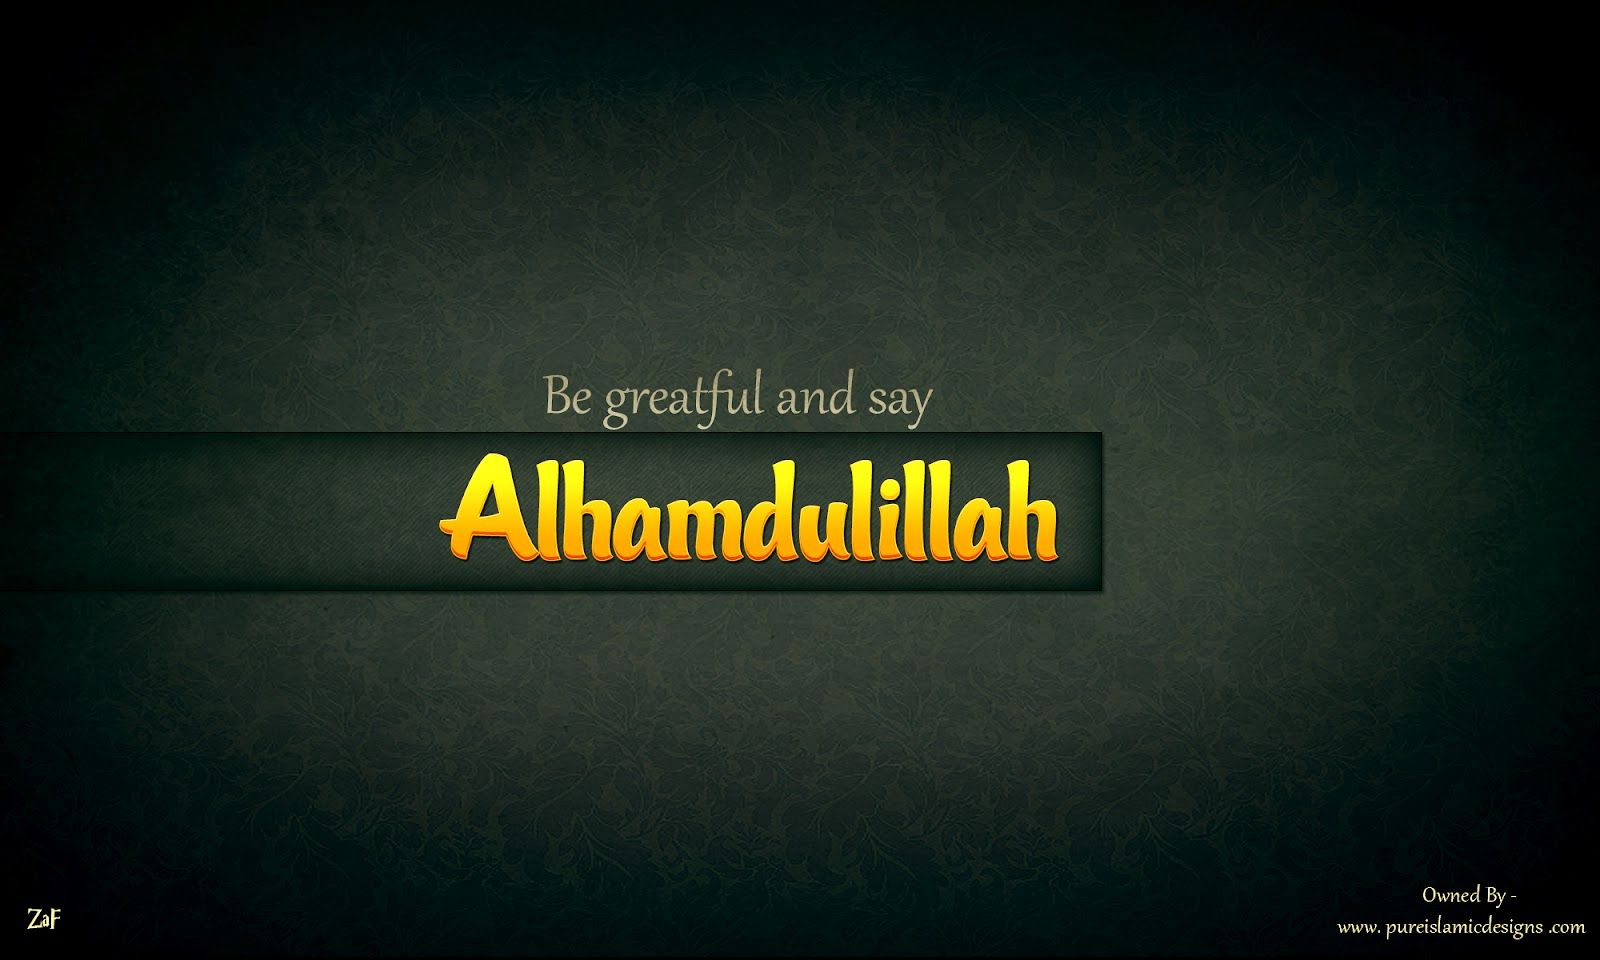 Alhamdulillah Hd Islamic Wallpapers Islamic Wallpaper Hd Islamic Quotes Wallpaper Islamic Wallpaper